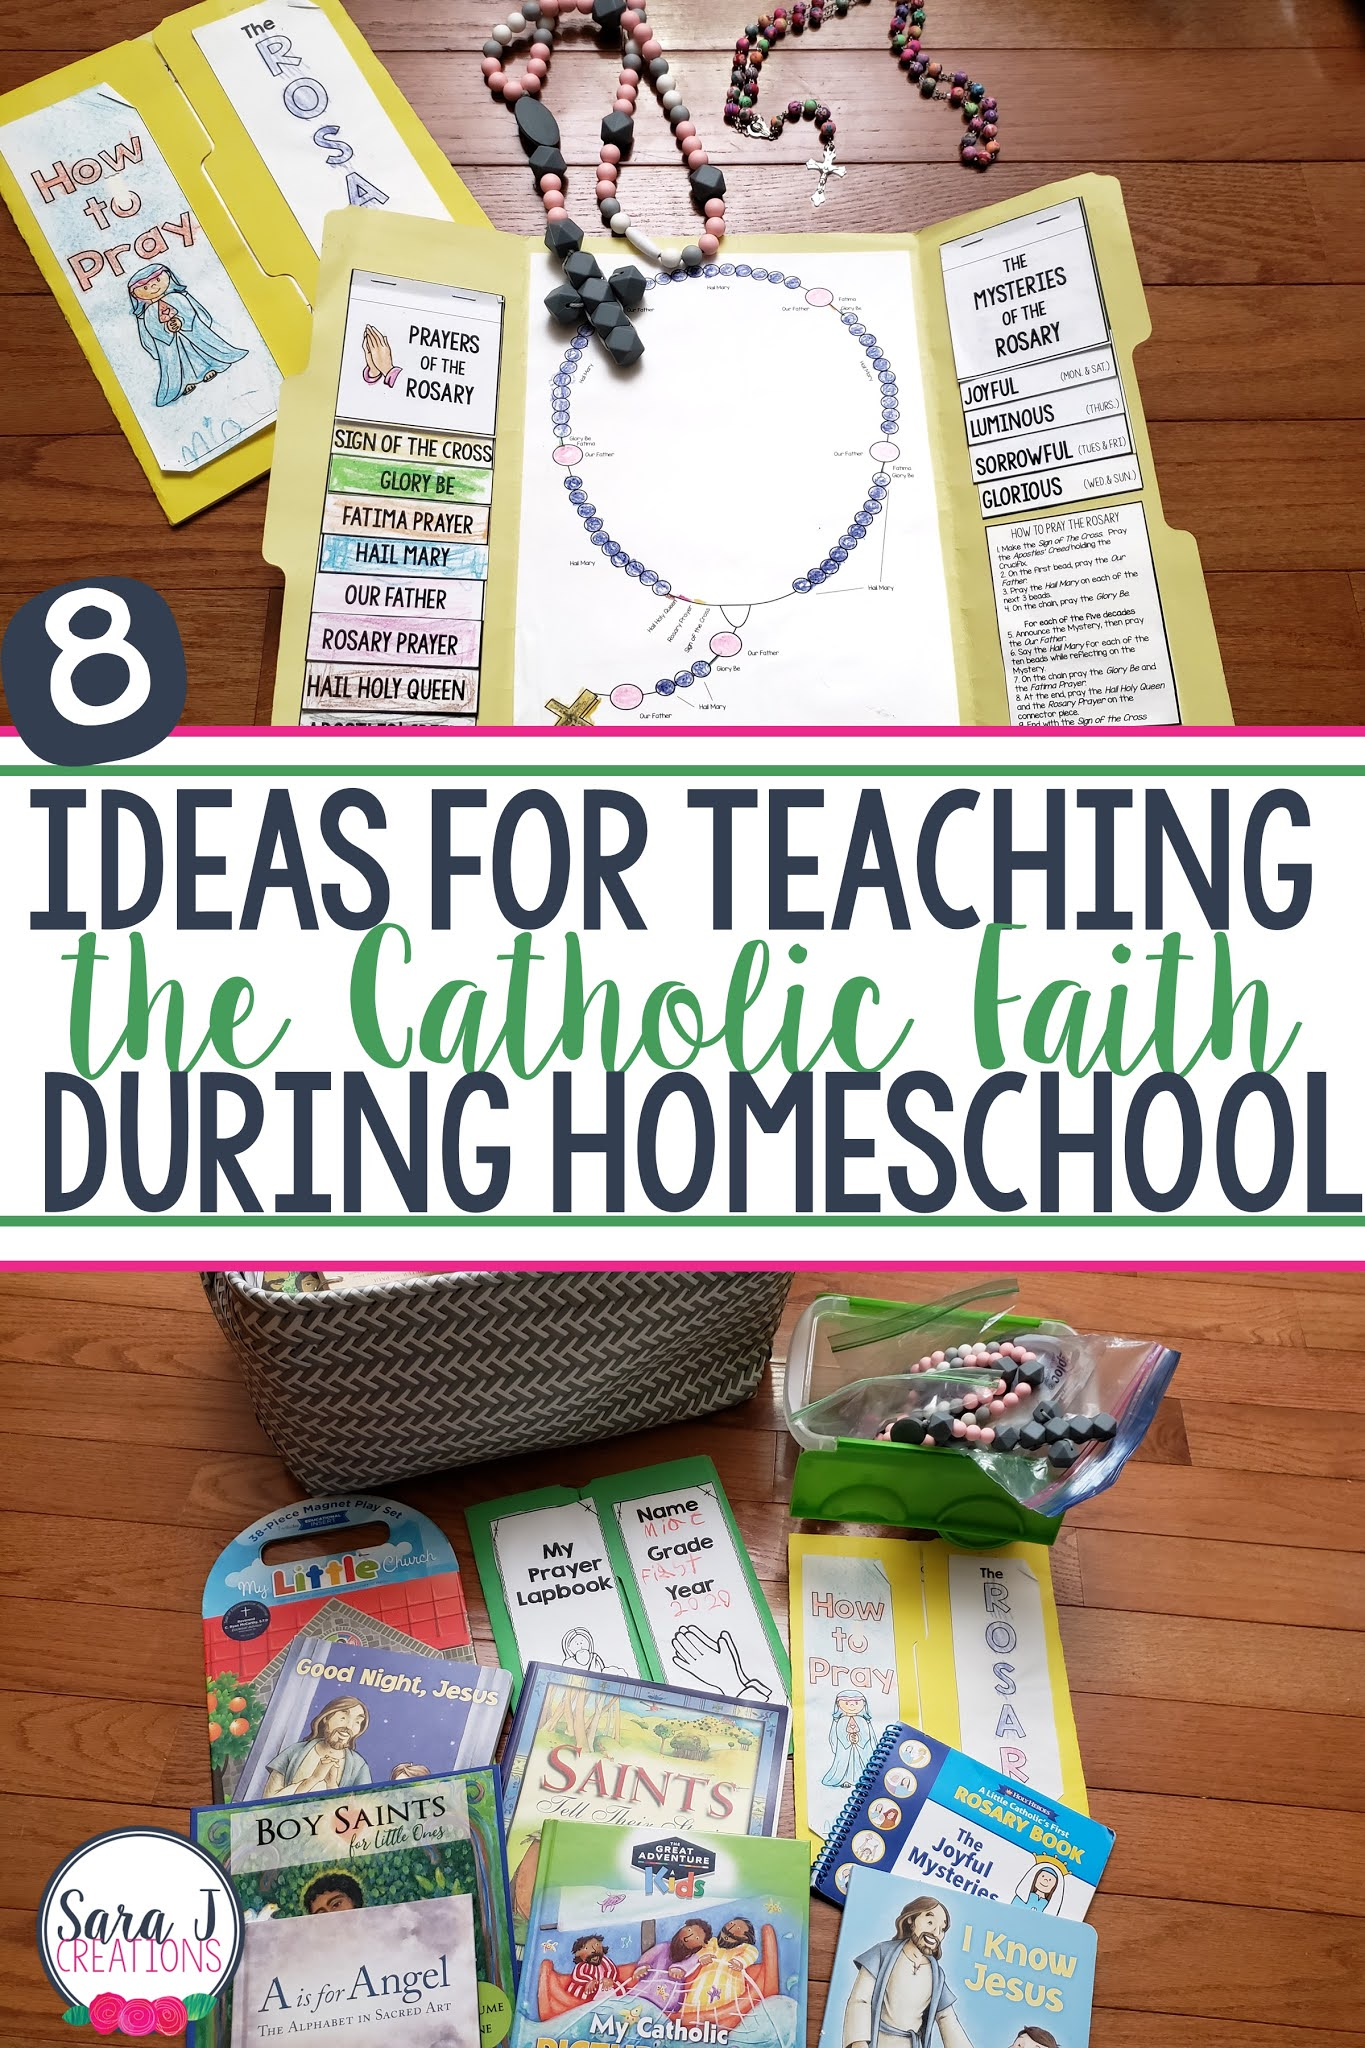 Simple ways to incorporate the Catholic faith into your homeschool day. These ideas could be added to your day even if you aren't homeschooling.